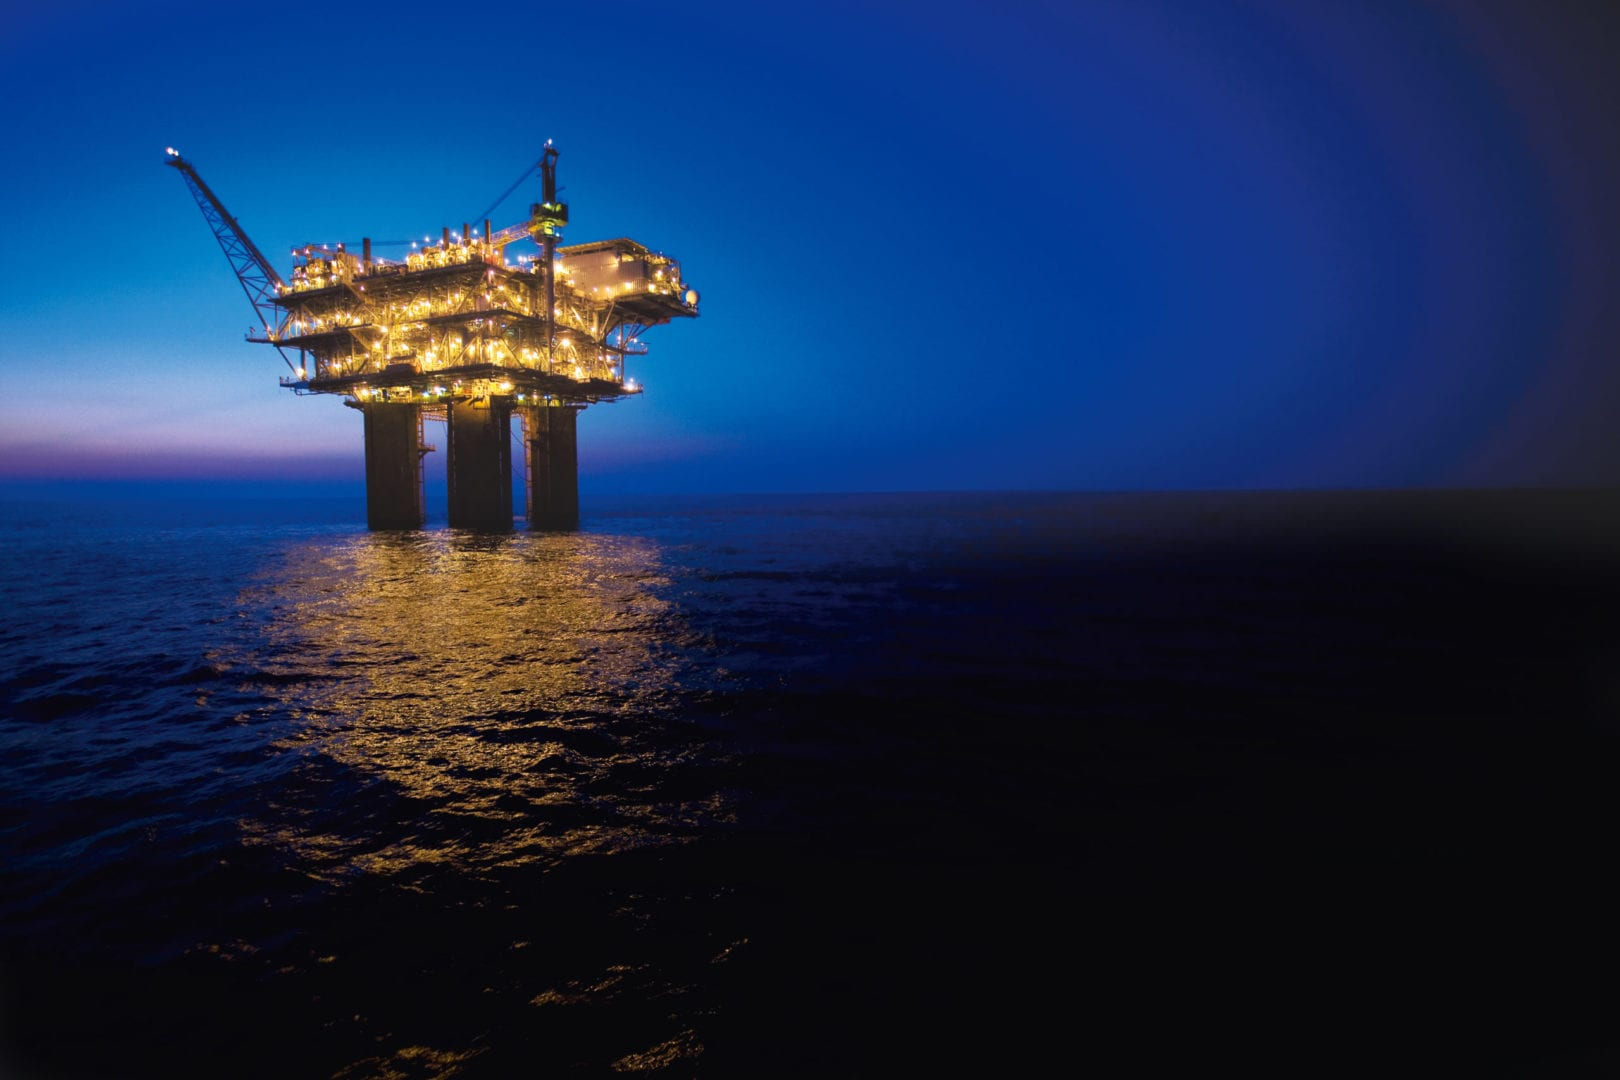 Petroleum to deliver strong returns for BHP – President affirms